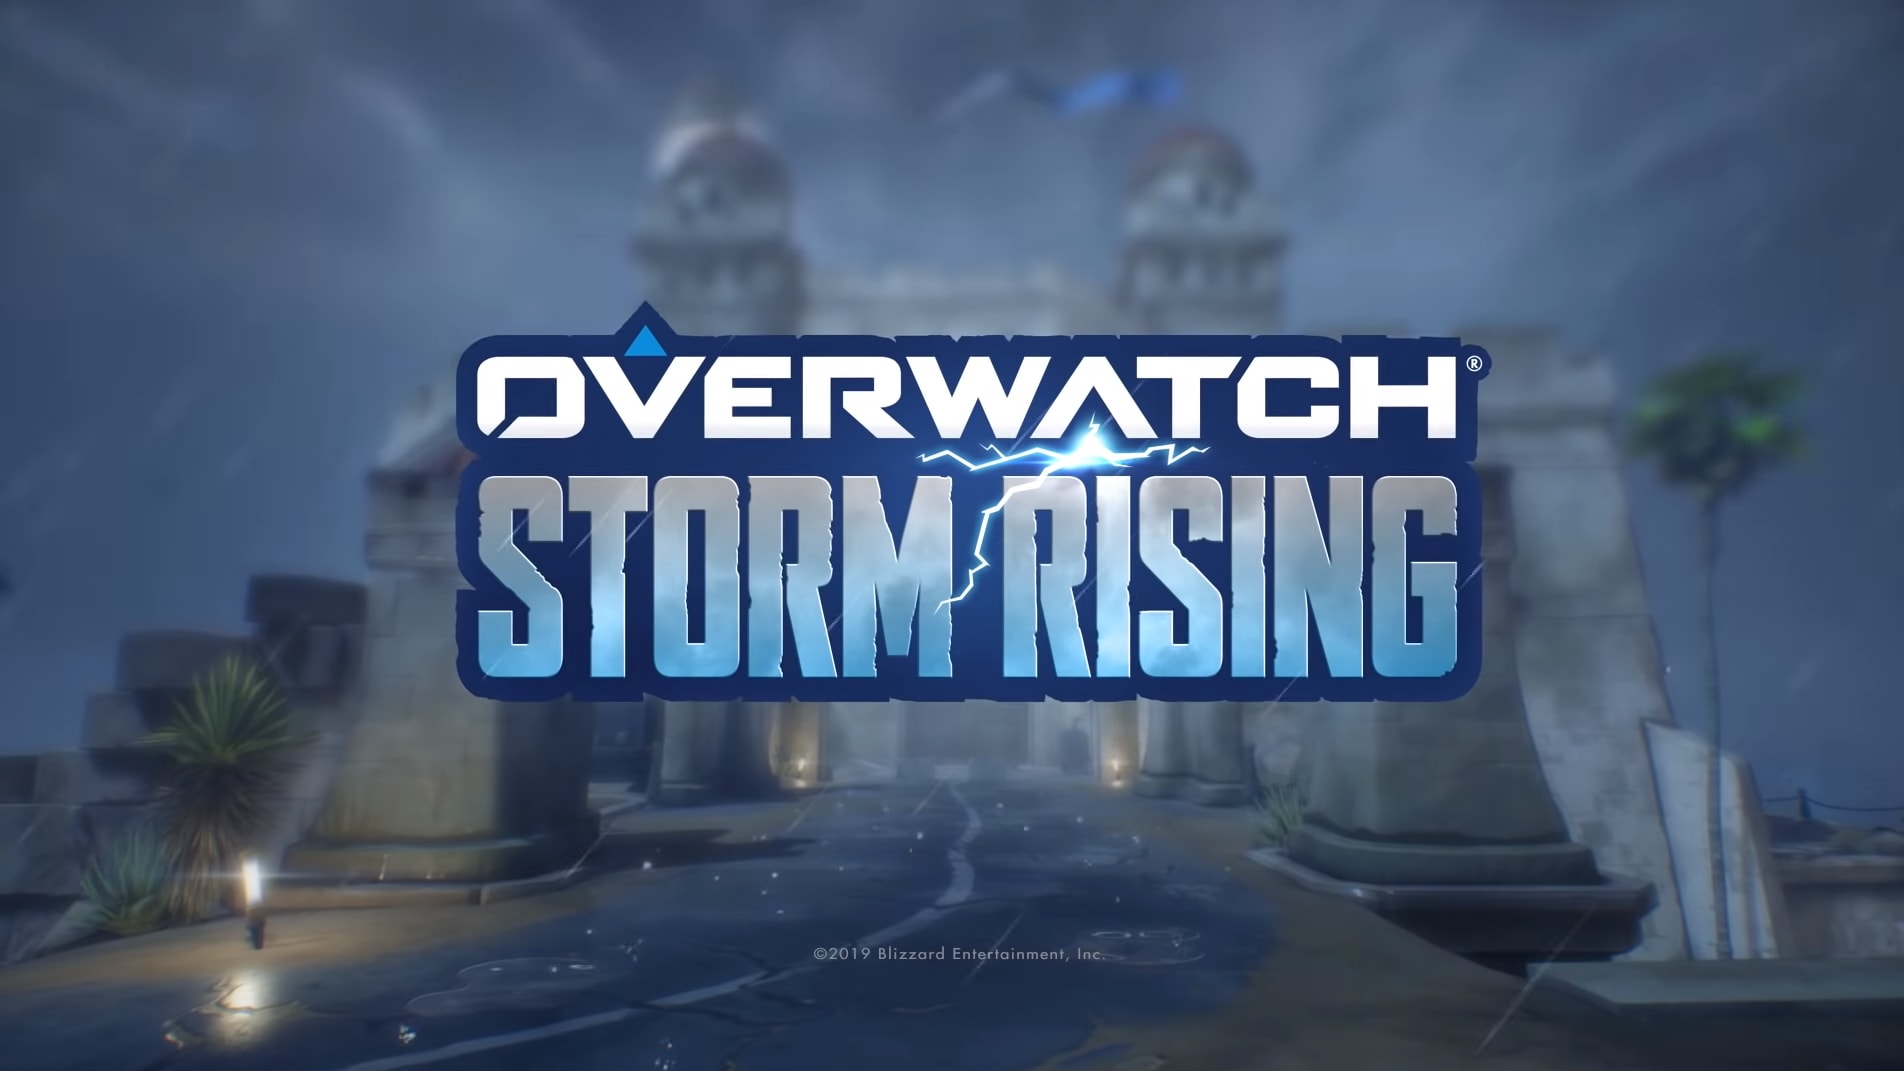 Overwatch Storm Rising Ending: What Is it?